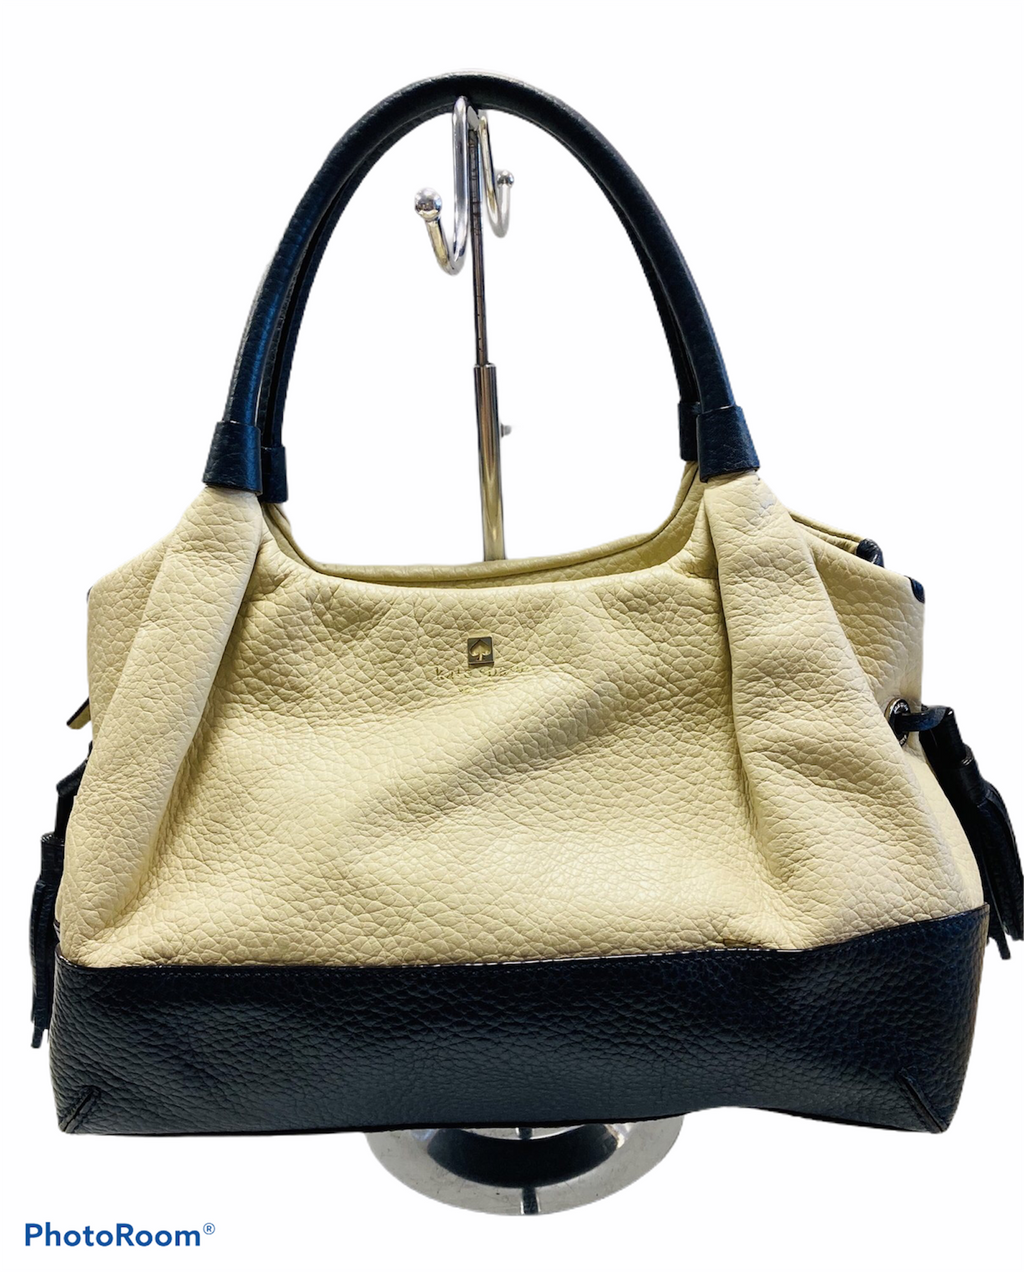 Handbag By Kate Spade  Size: Large